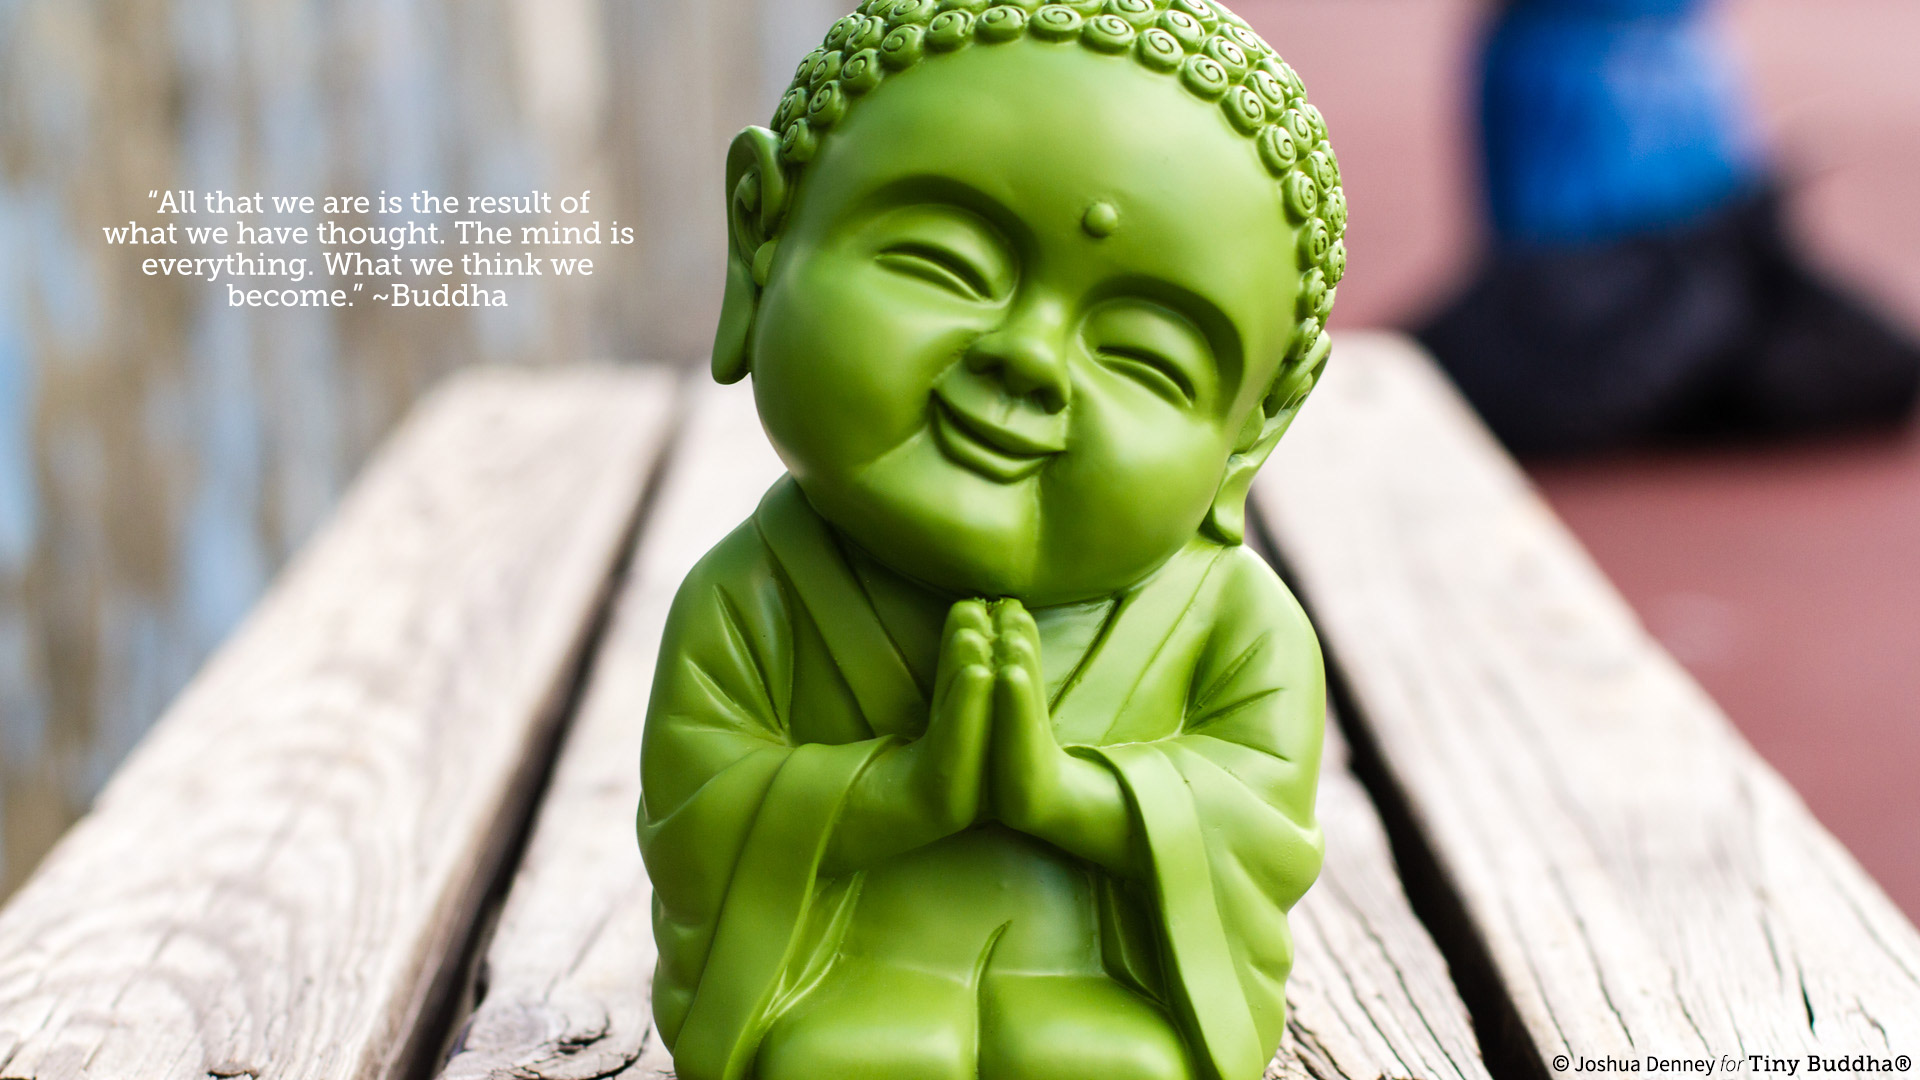 Laughing Buddha Images, Pics and Snaps for Free Download